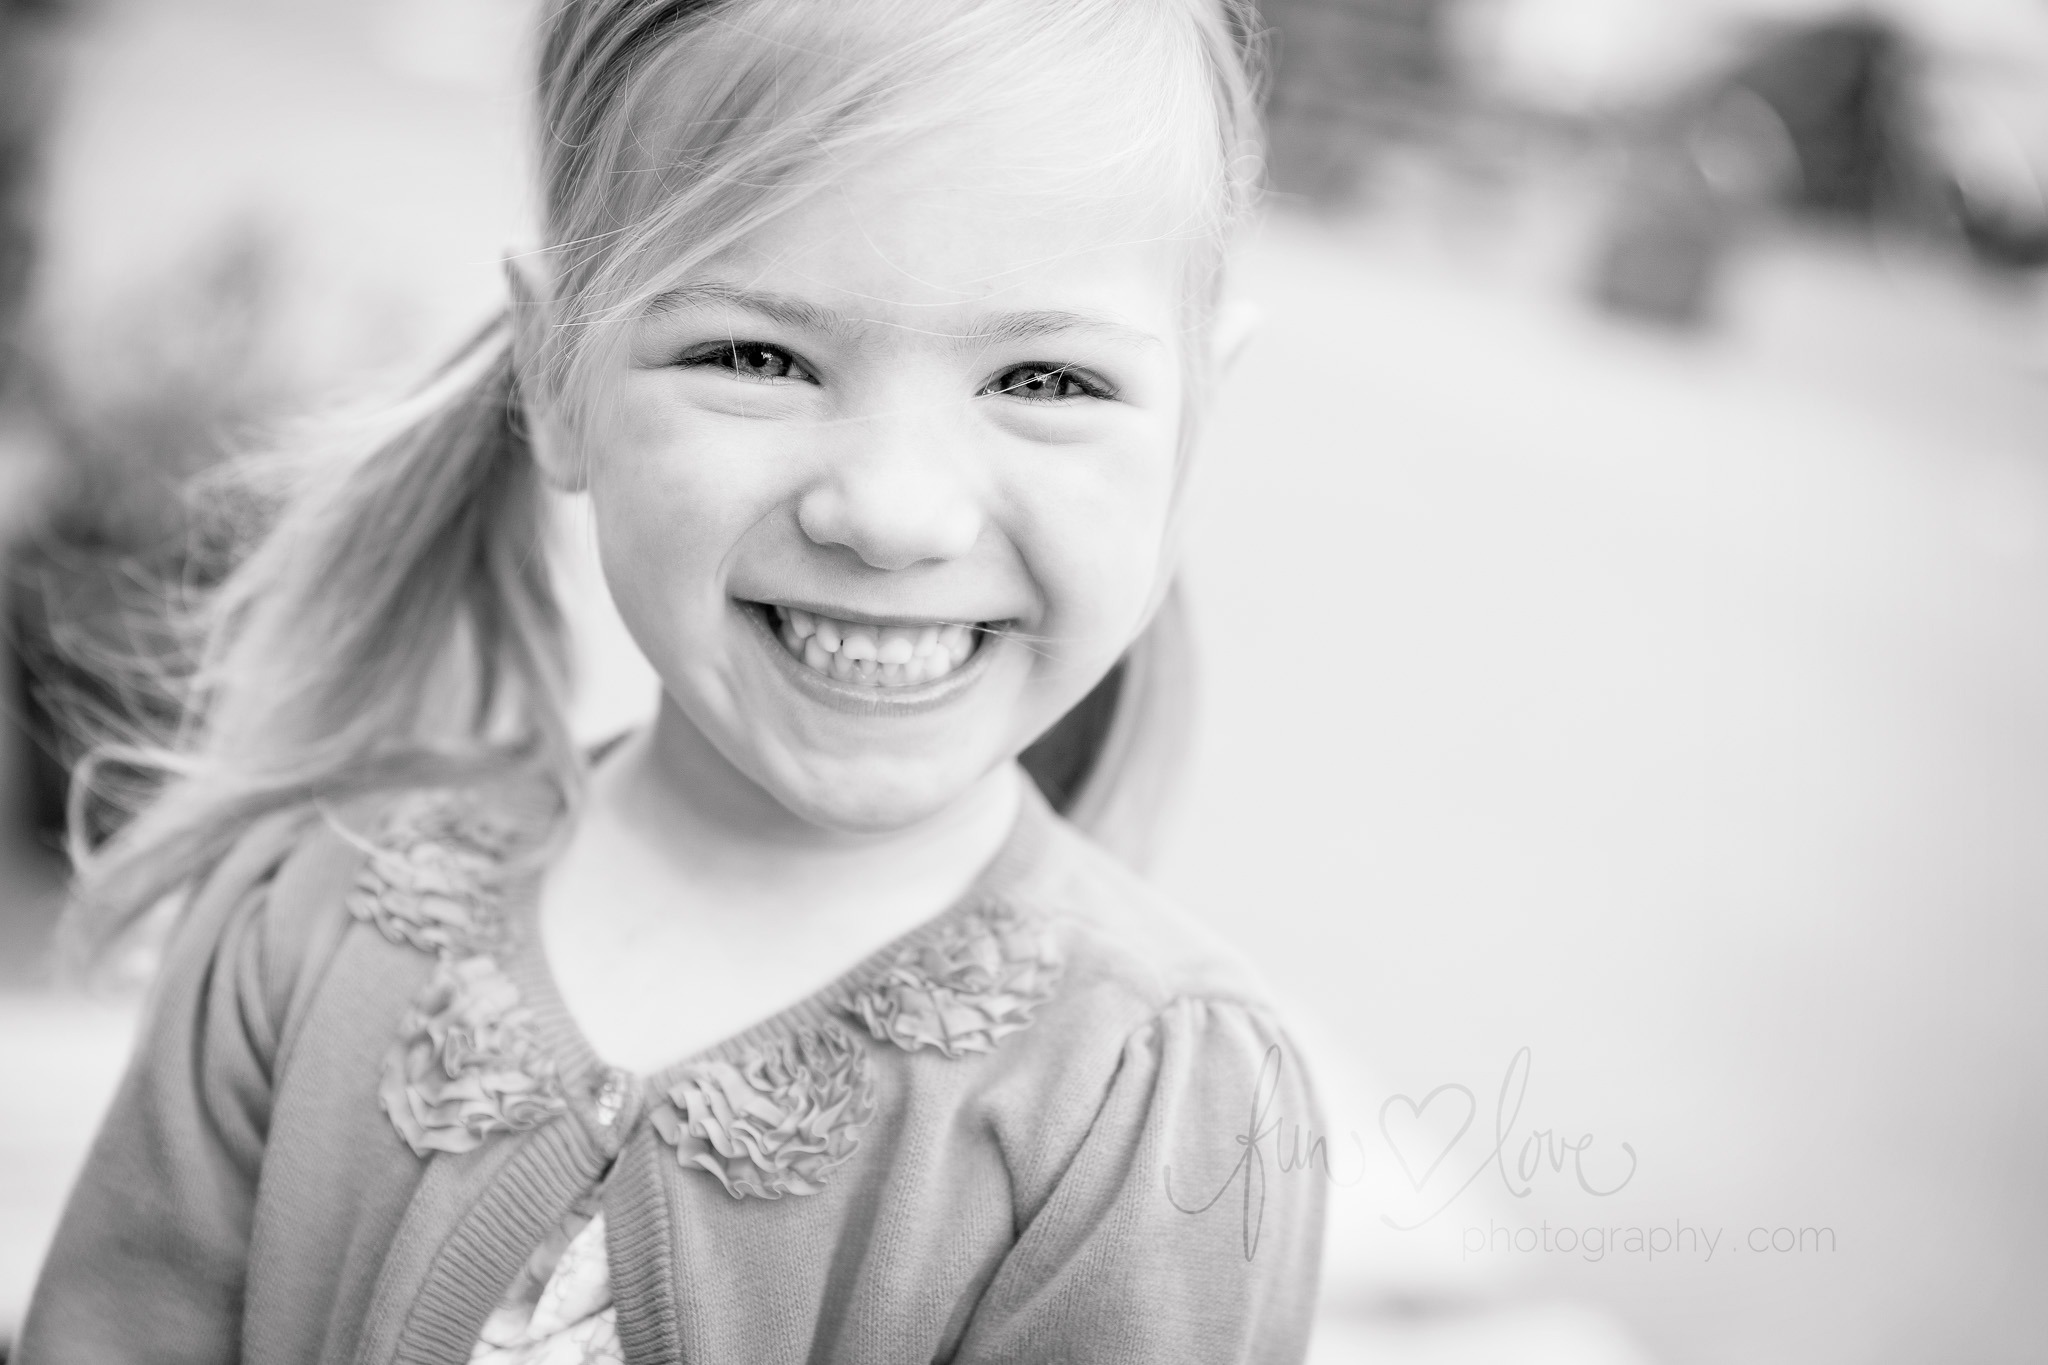 Natural Smile Child Photography